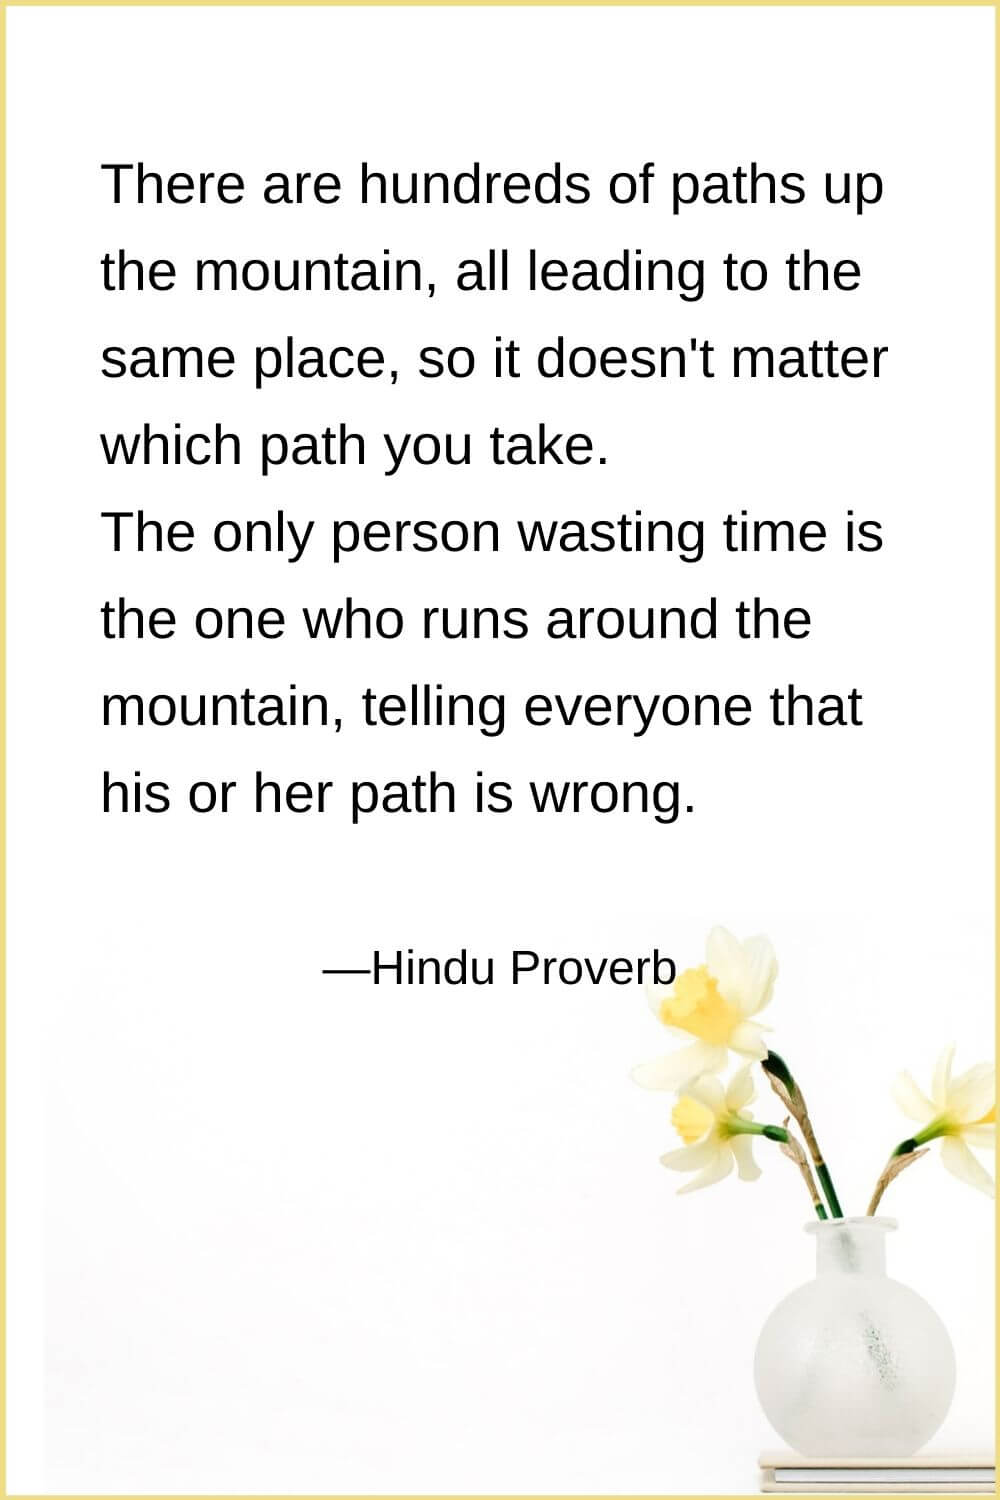 There are hundreds of paths up the mountain, all leading to the same place, so it doesn't matter which path you take. The only person wasting time is the one who runs around the mountain, telling everyone that his or her path is wrong.Hindu Proverb